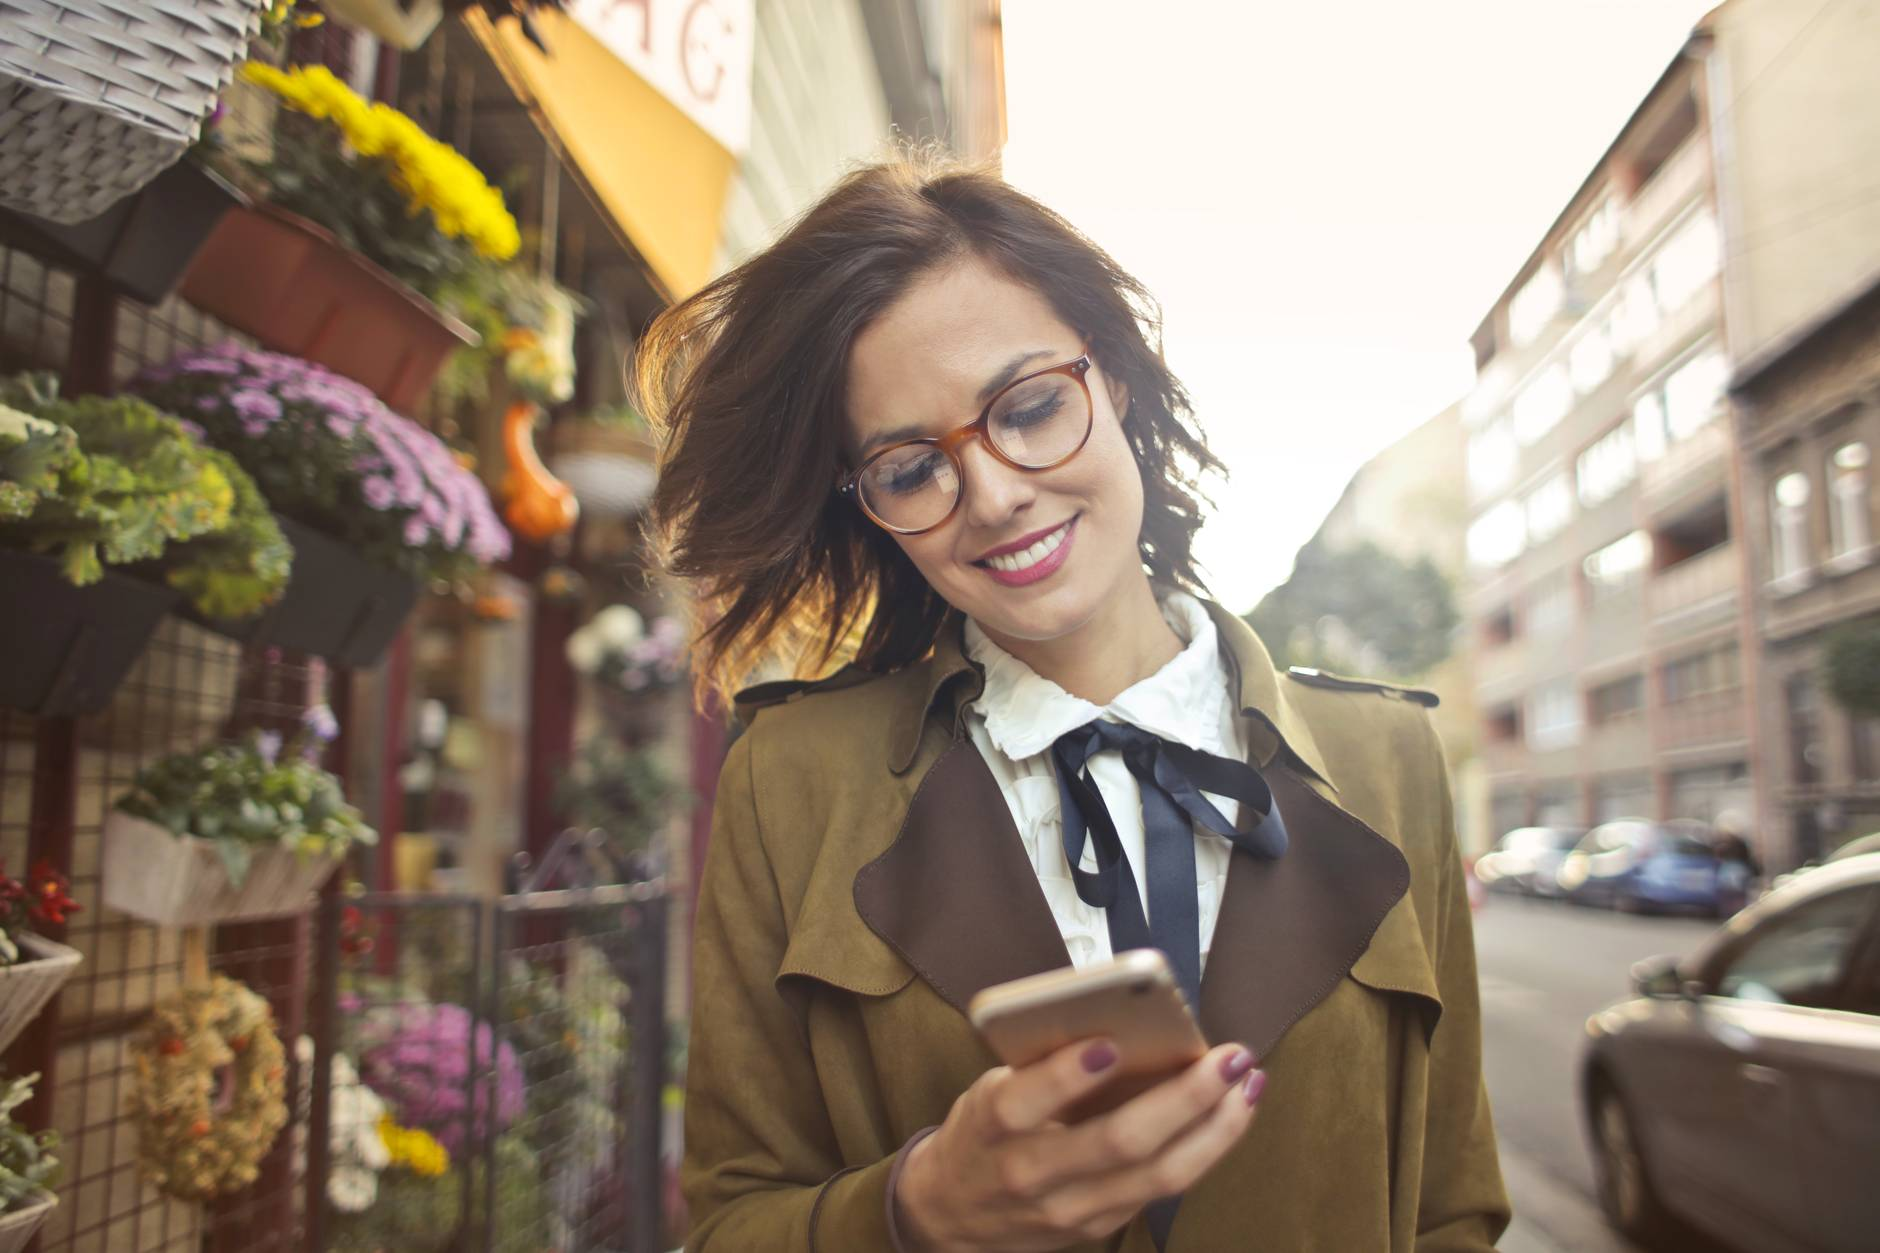 woman beside flower shop using smartphone